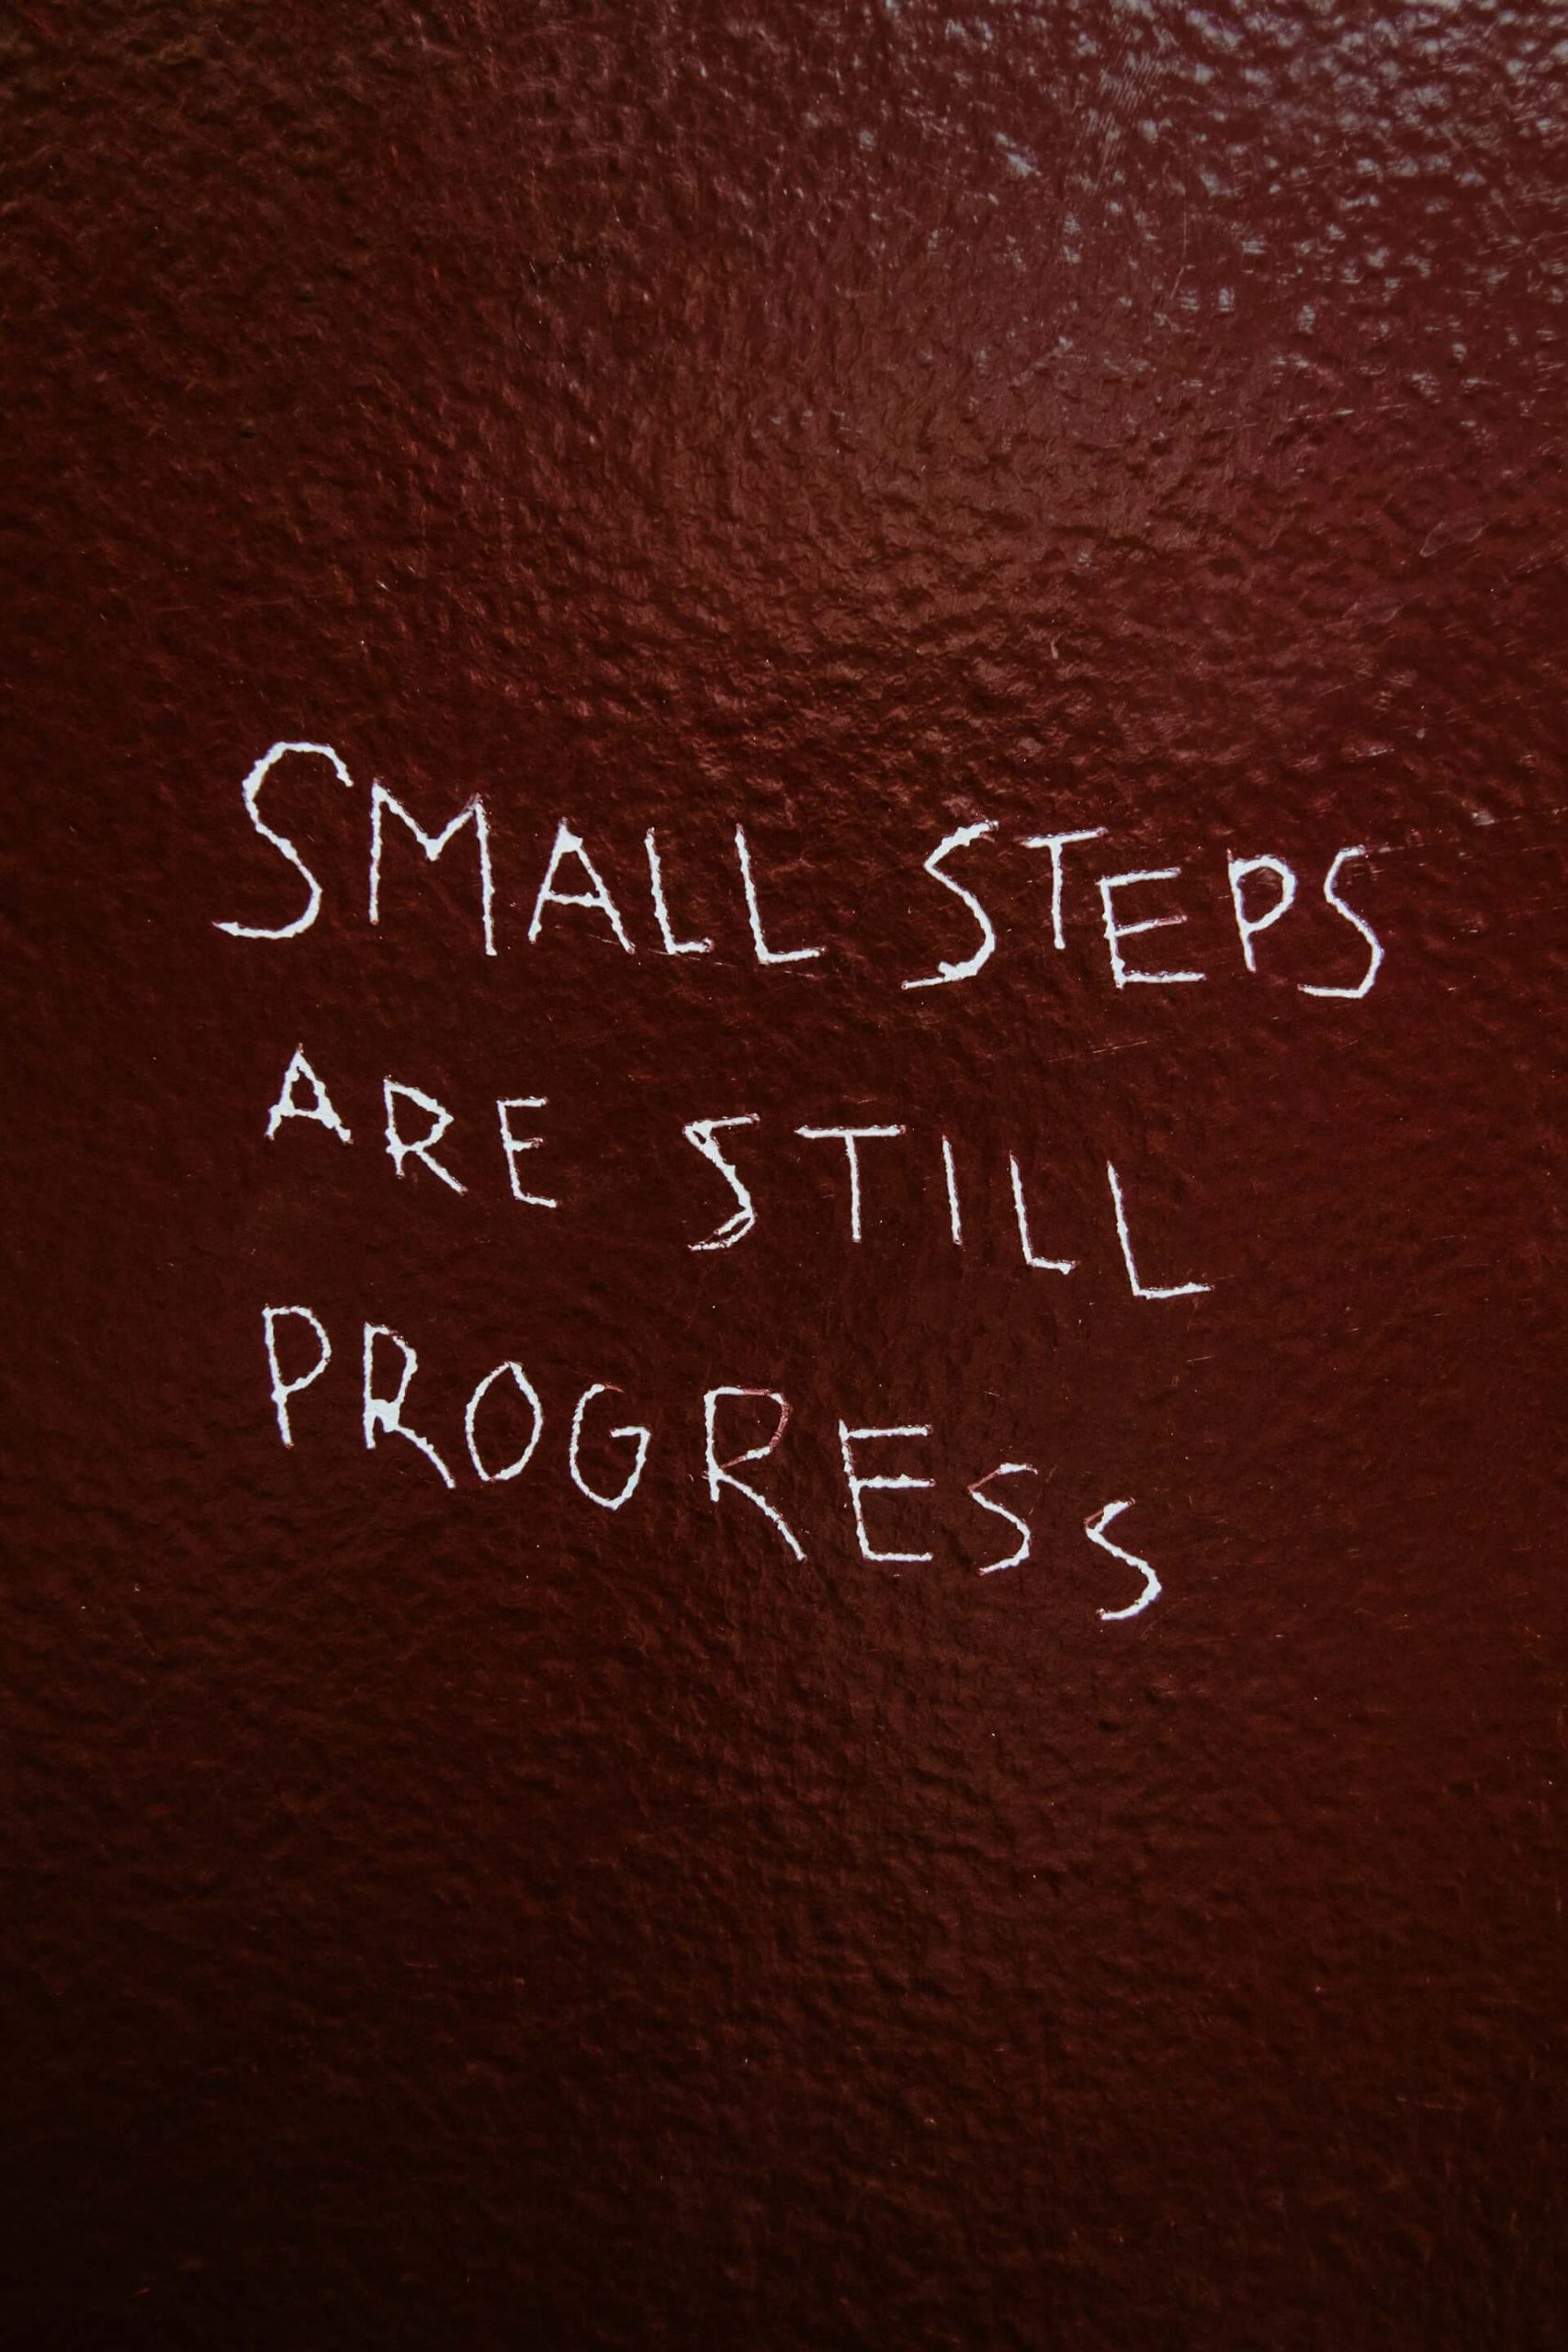 A sign saying 'Small Steps Are Still Progress'